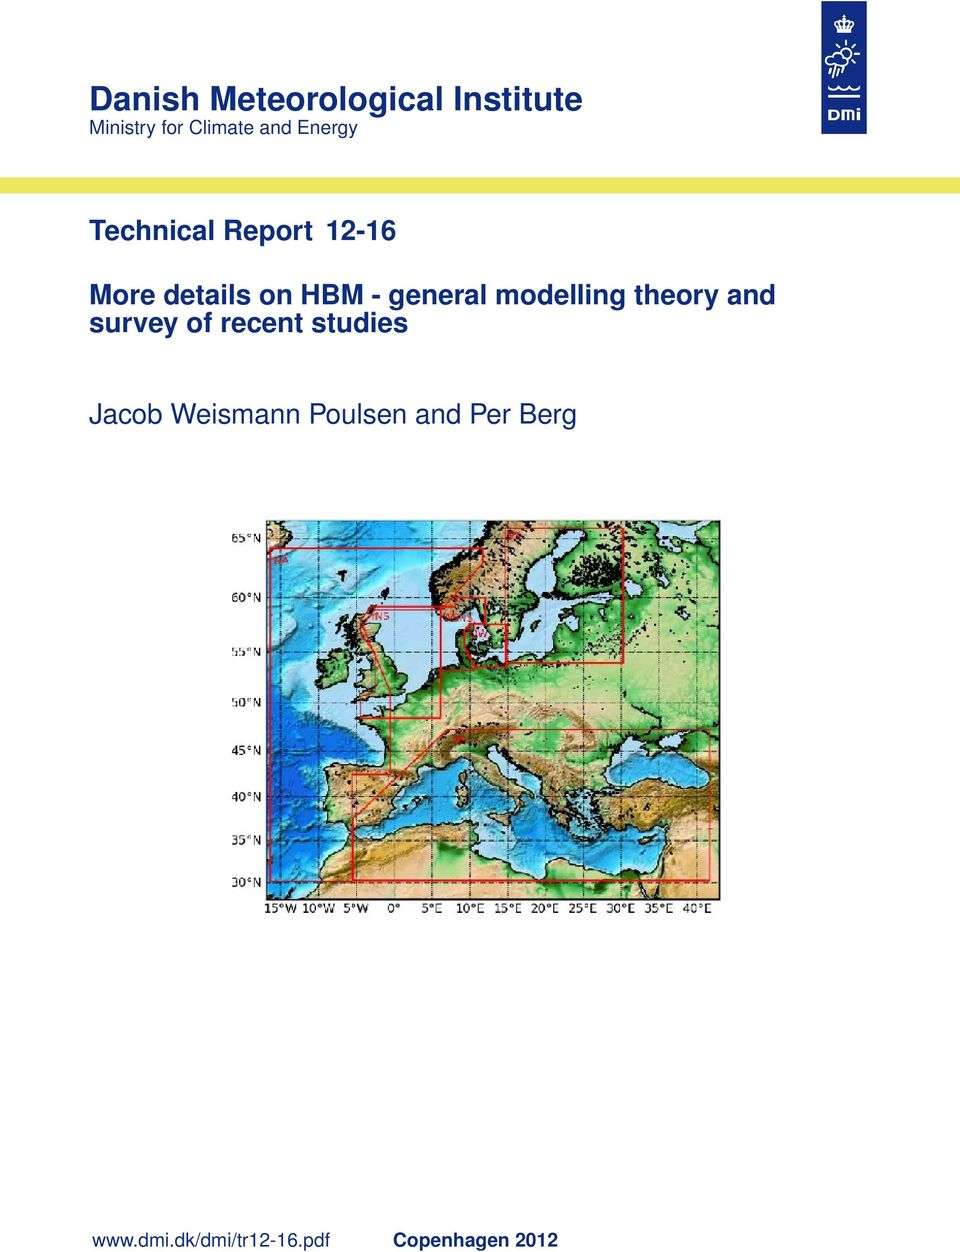 theory and survey of recent studies Jacob Weismann